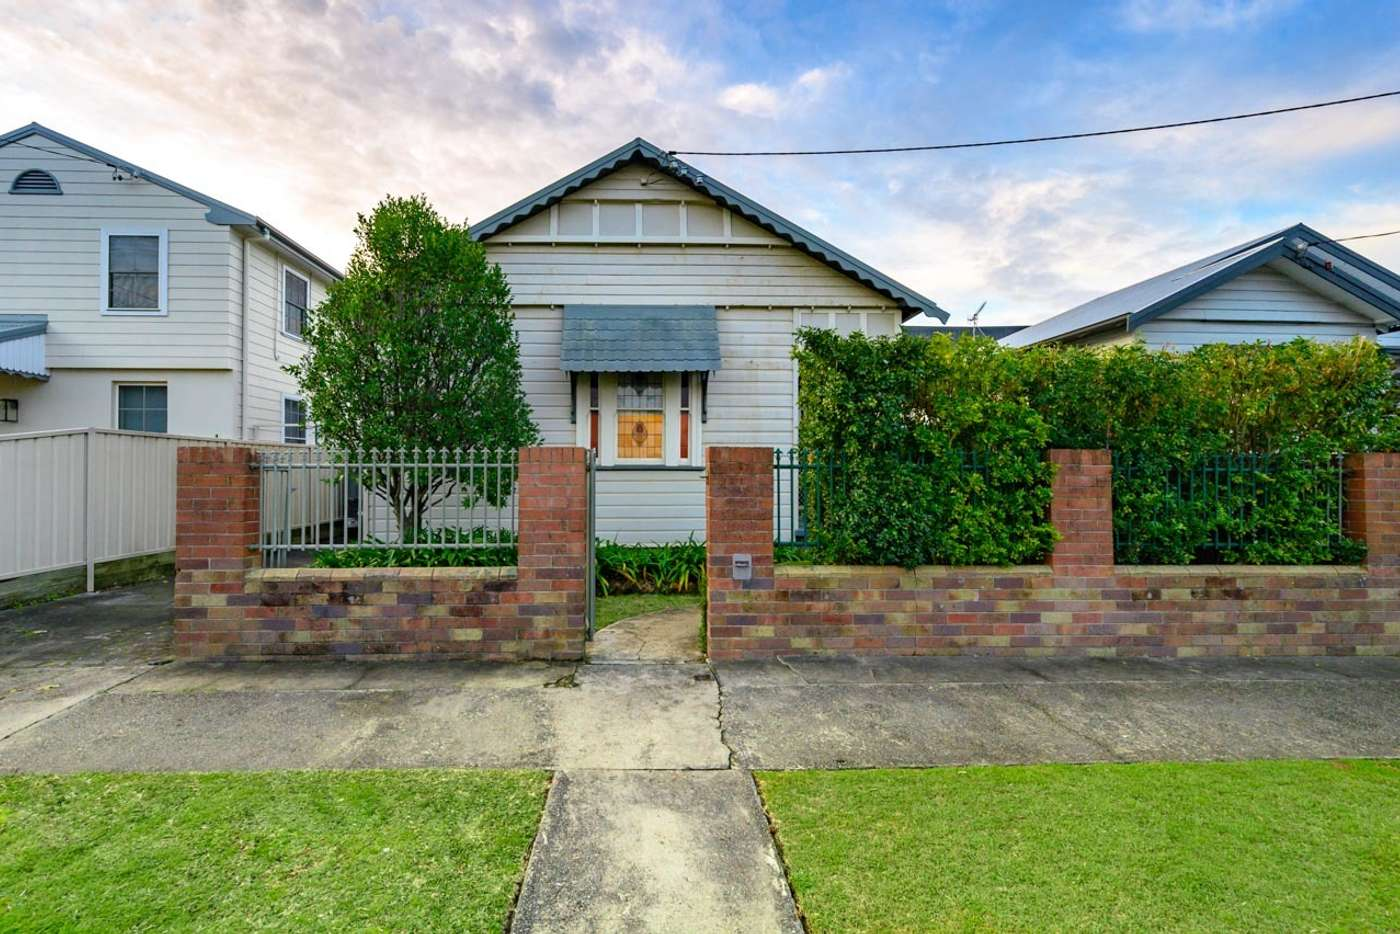 Main view of Homely house listing, 31 Victoria Street, New Lambton NSW 2305